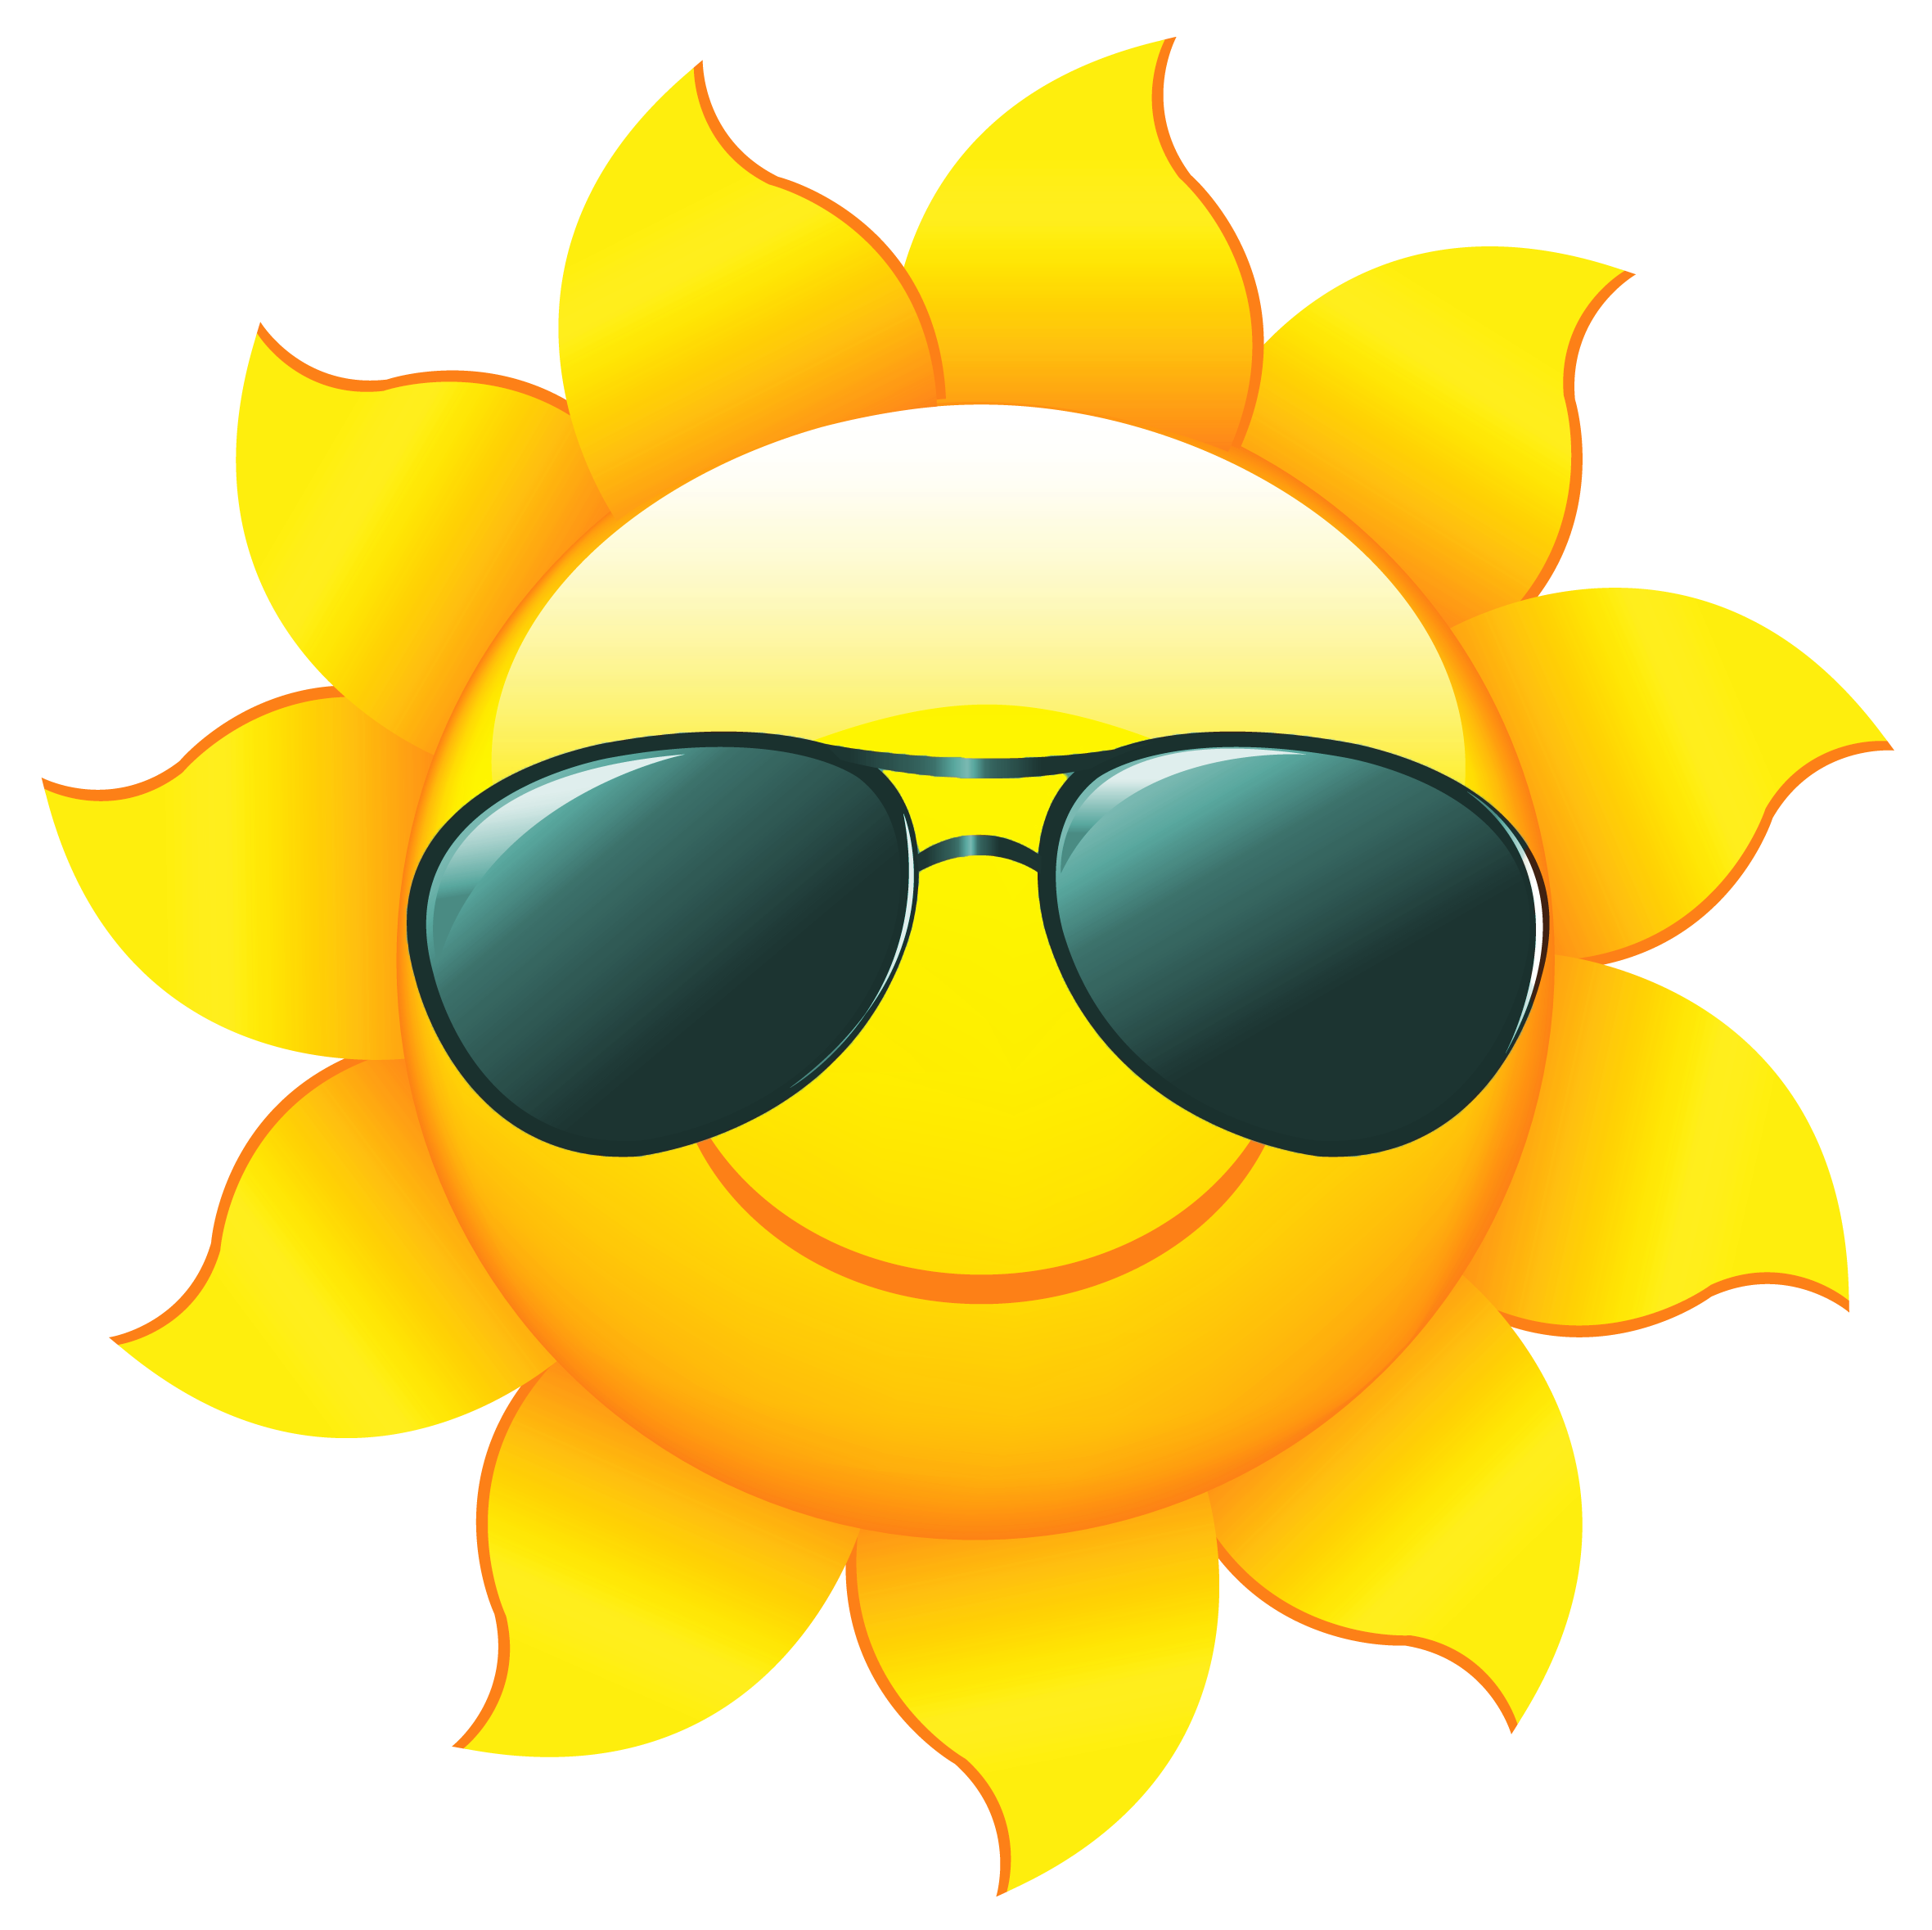 Clipart smiling sun png freeuse stock Community Events Calendar 6.30-7.6.2018 - Town of Bedford png freeuse stock